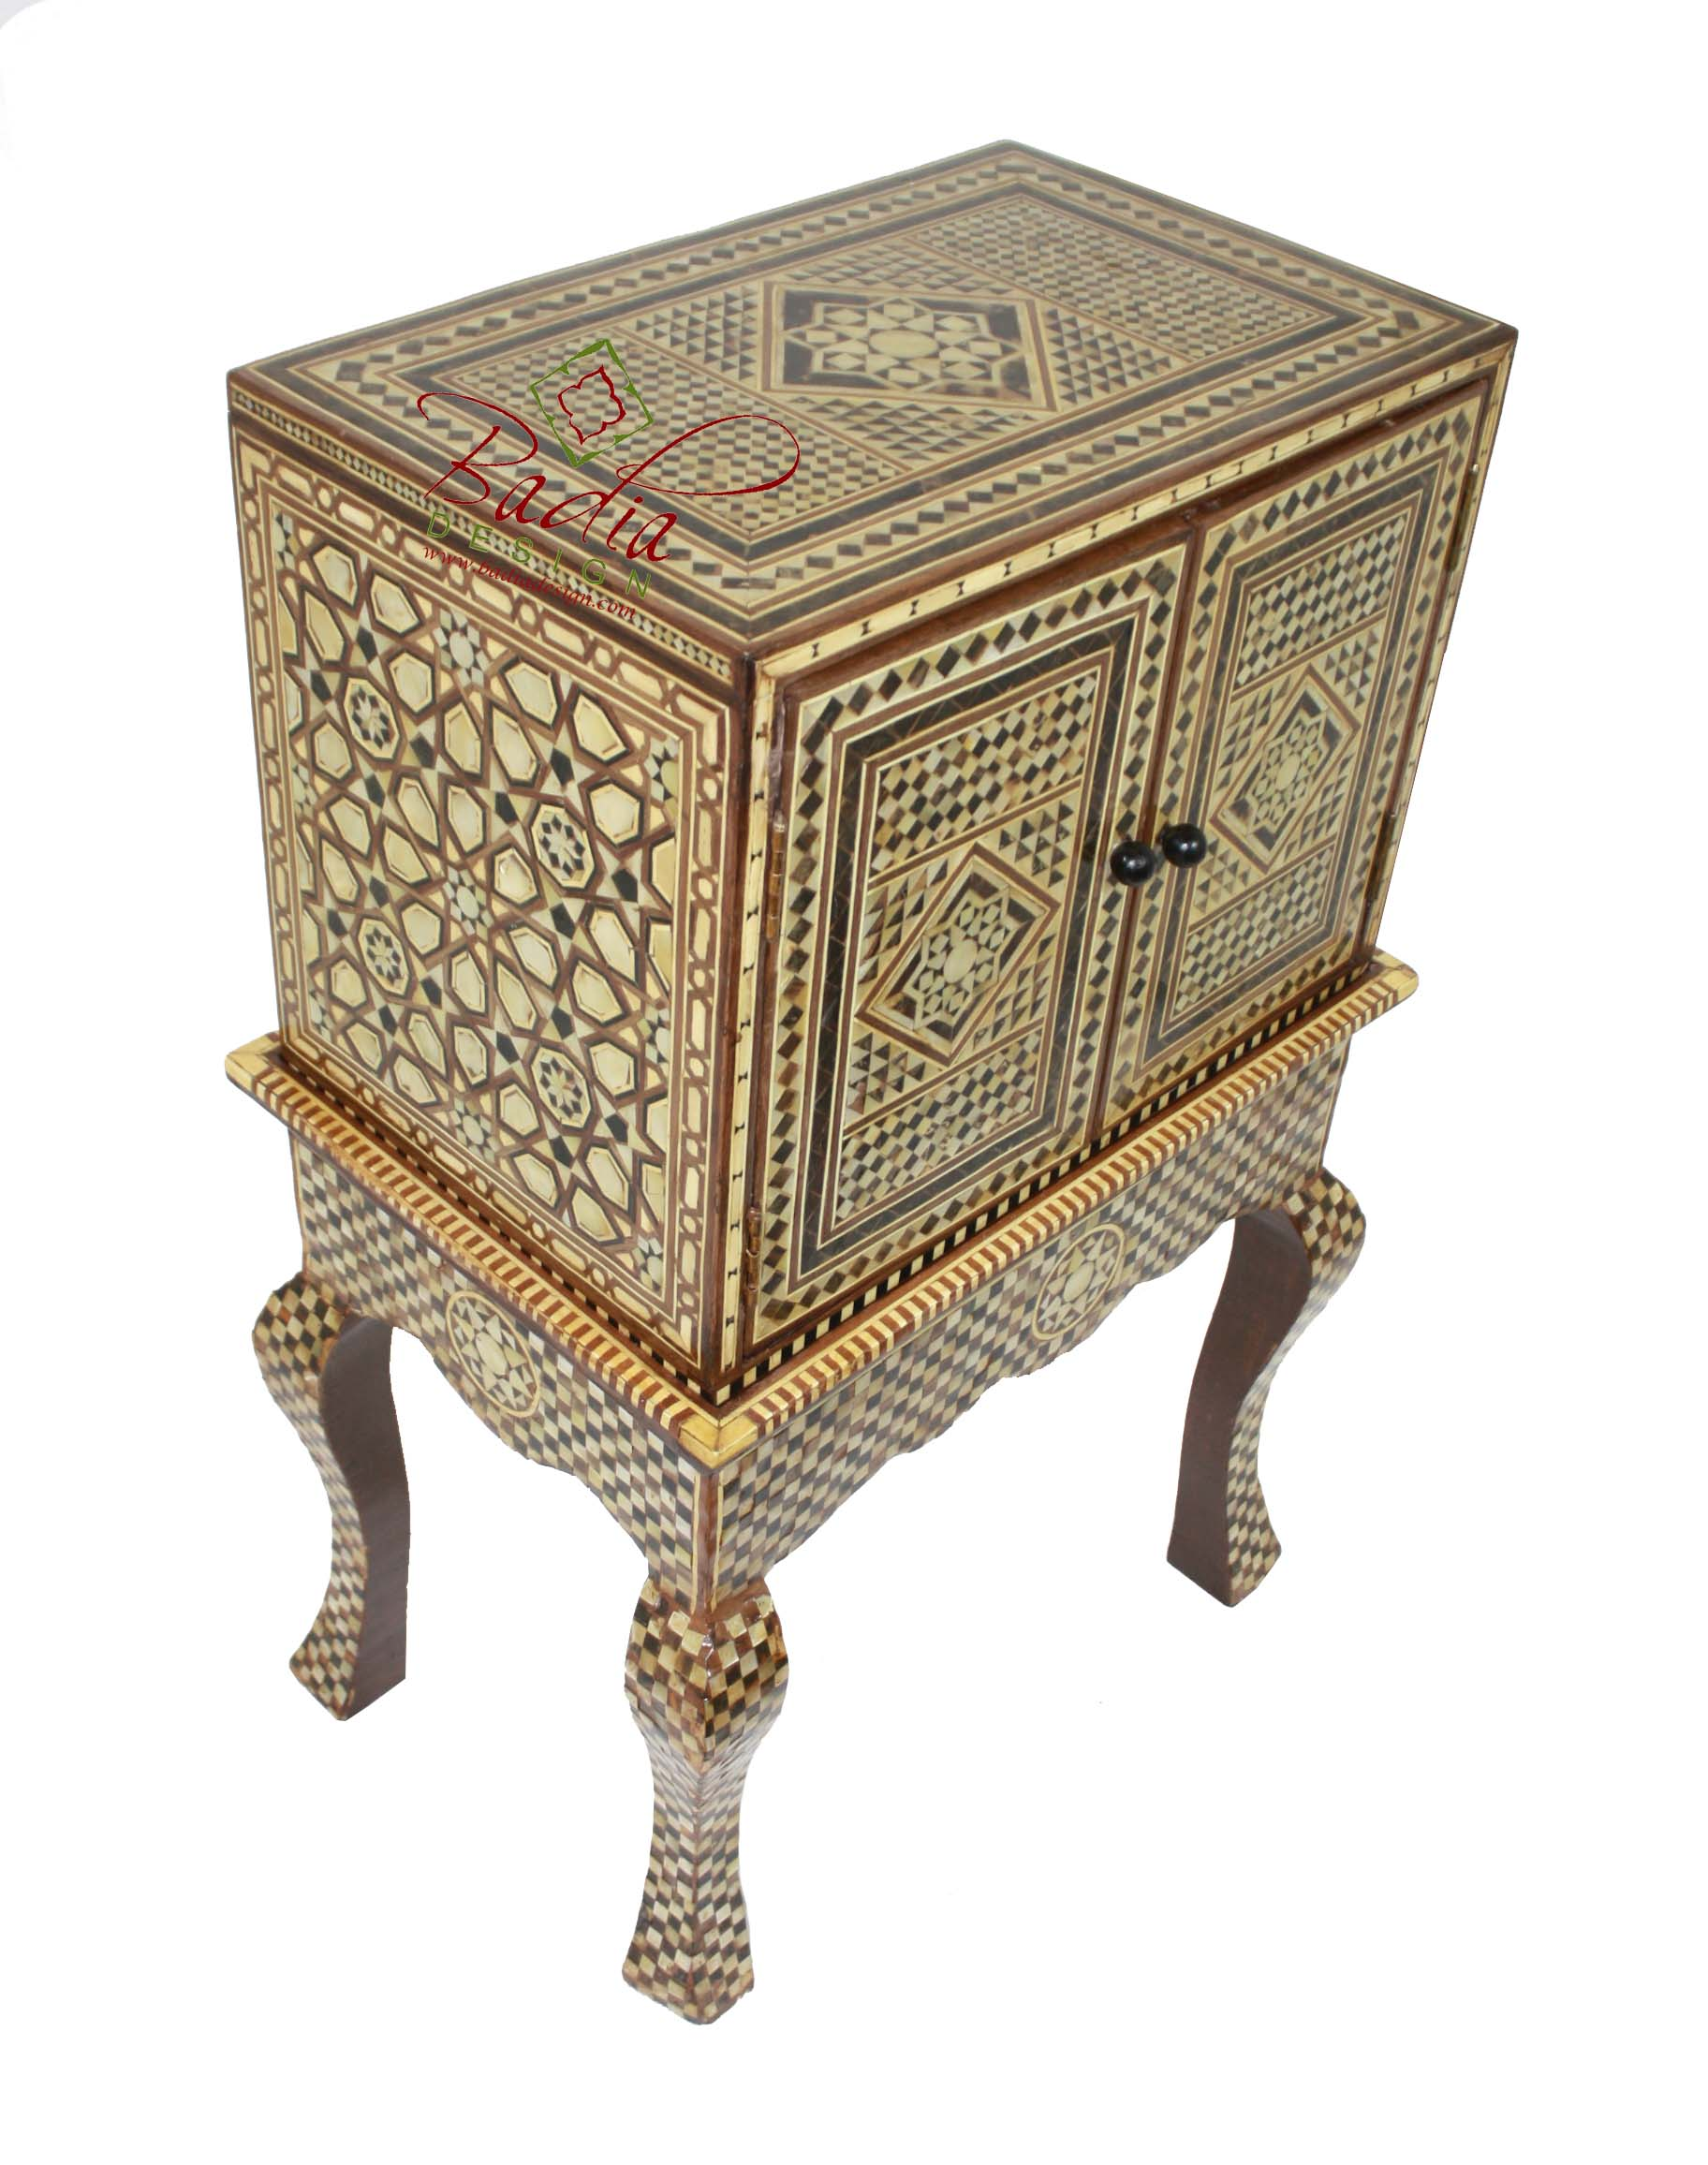 syrian-jewelry-box-with-stand-mop-st082-2.jpg